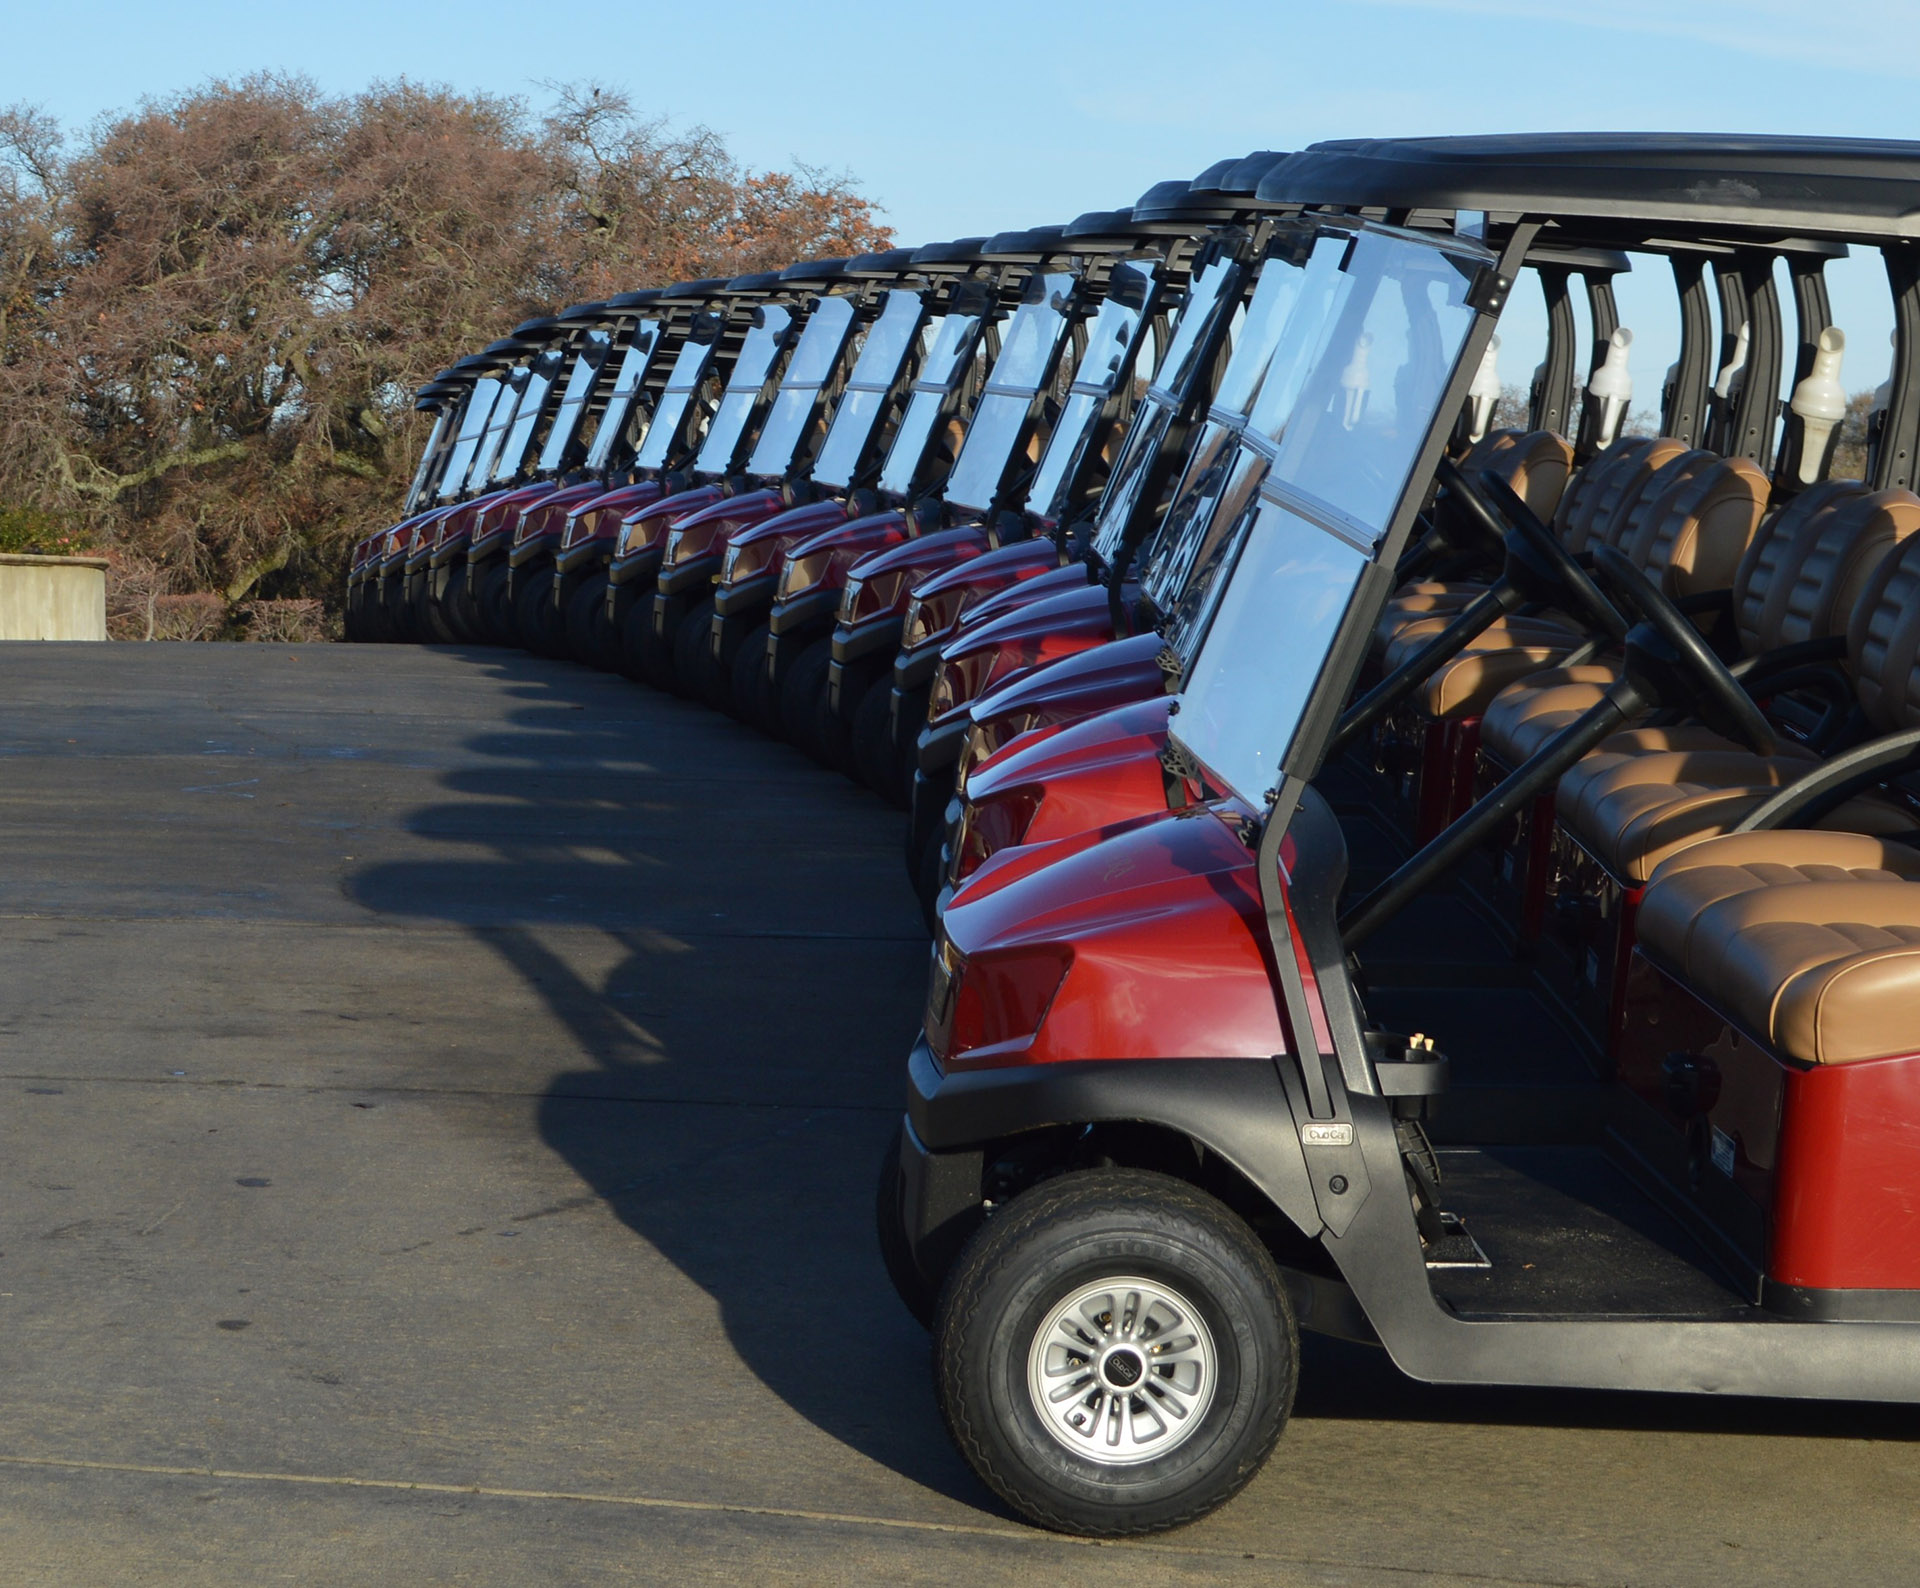 A golf cart sits next to the path at Catta Verdera Country Club at Twelve Bridges